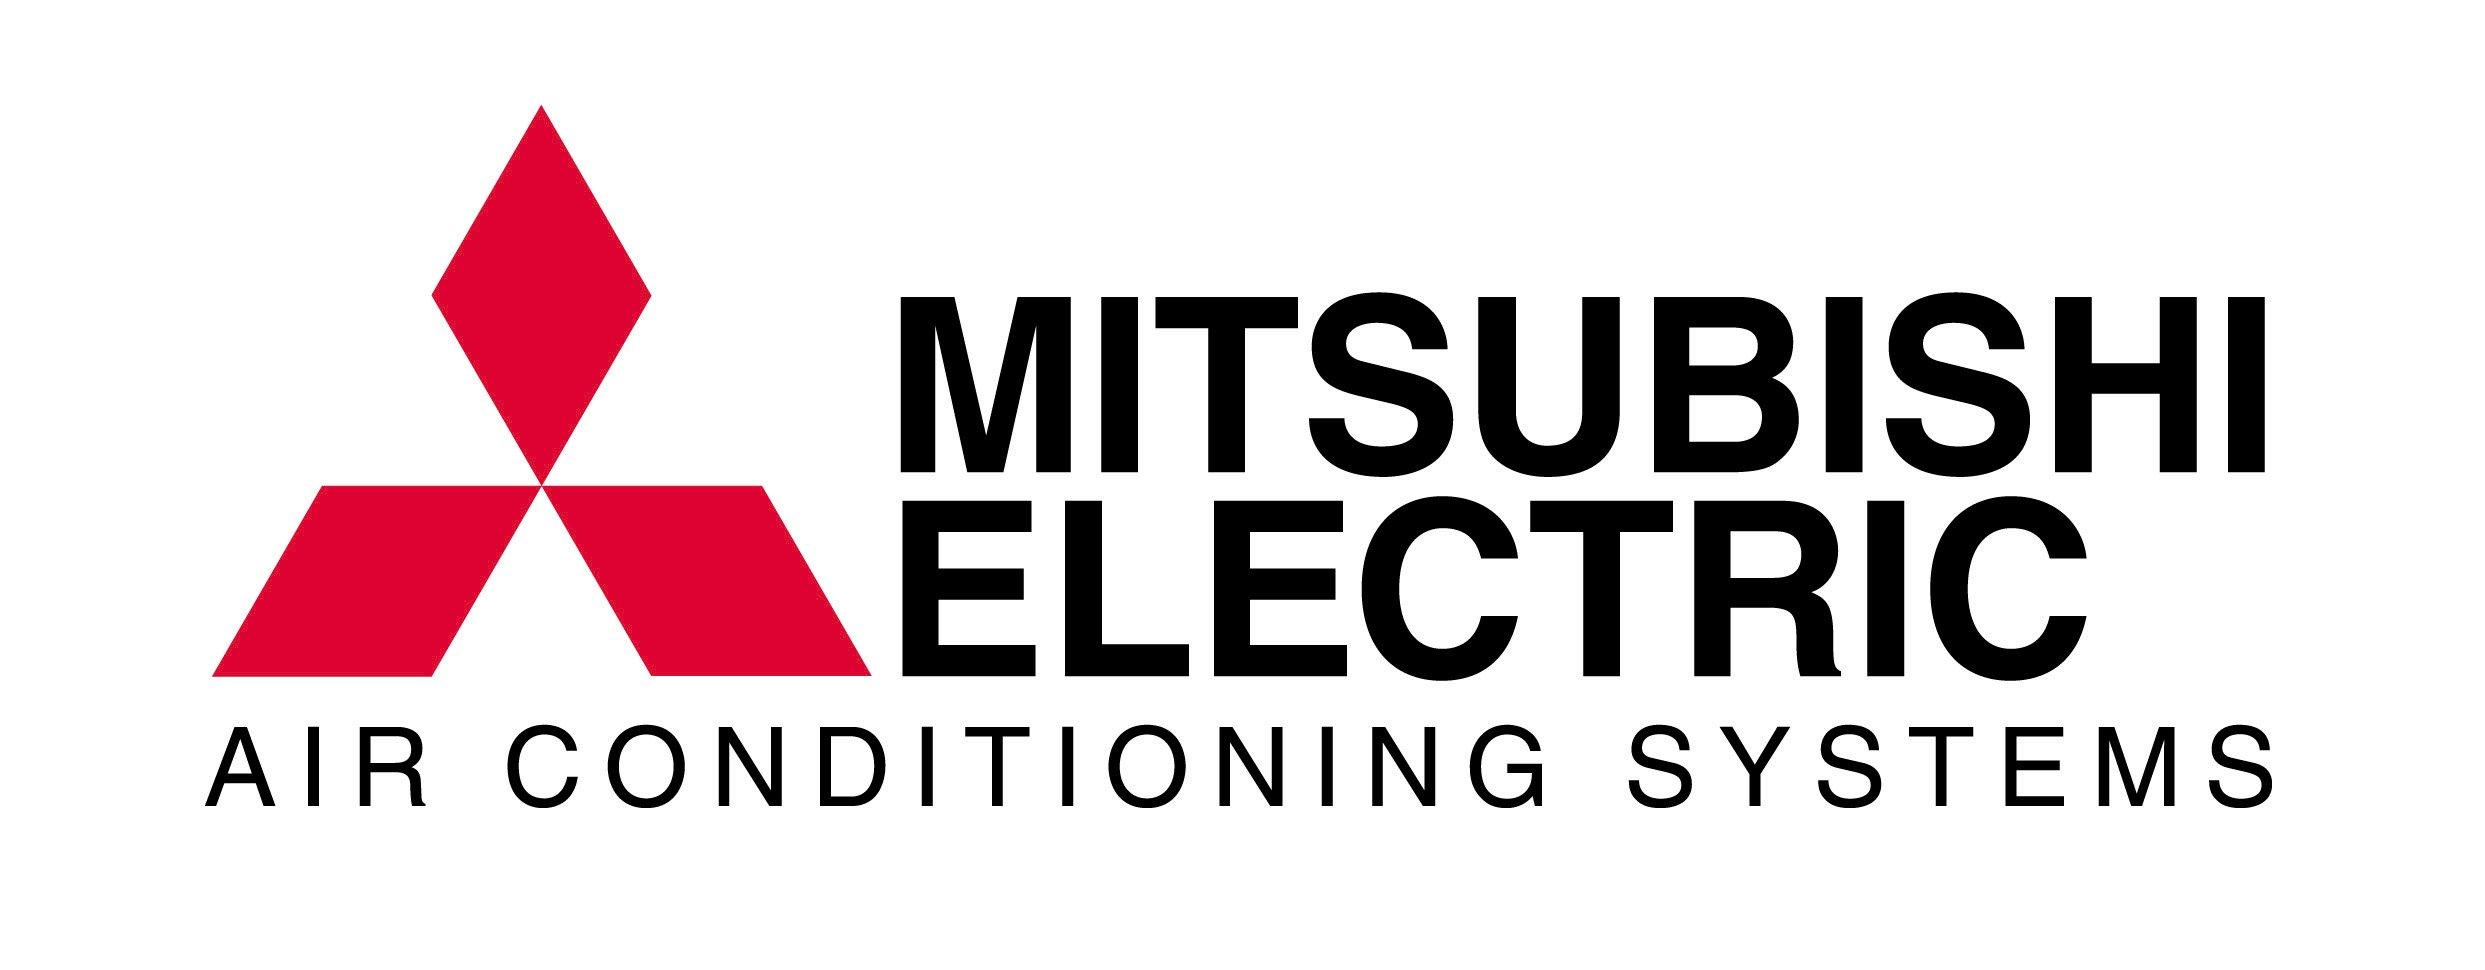 Mitsubishi_Electric_log